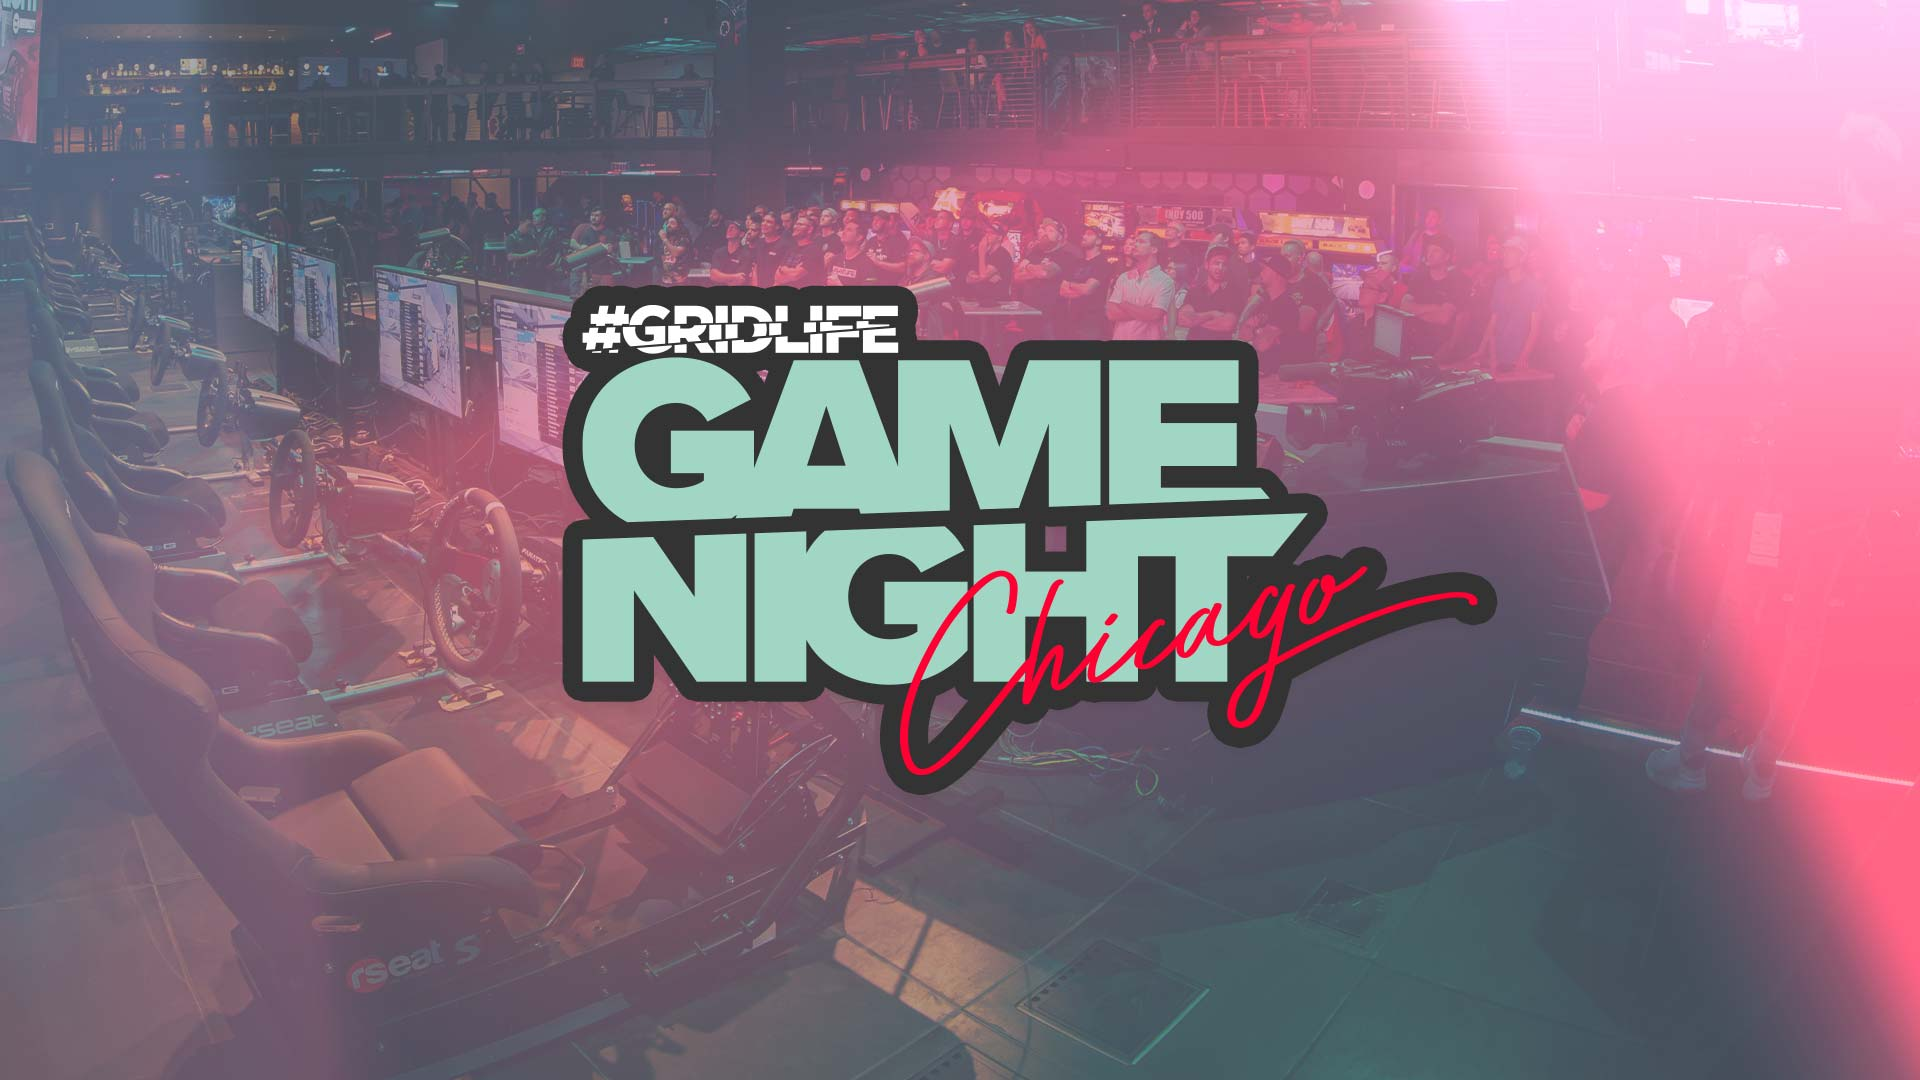 Gridlife GameNight - Chicago 2020